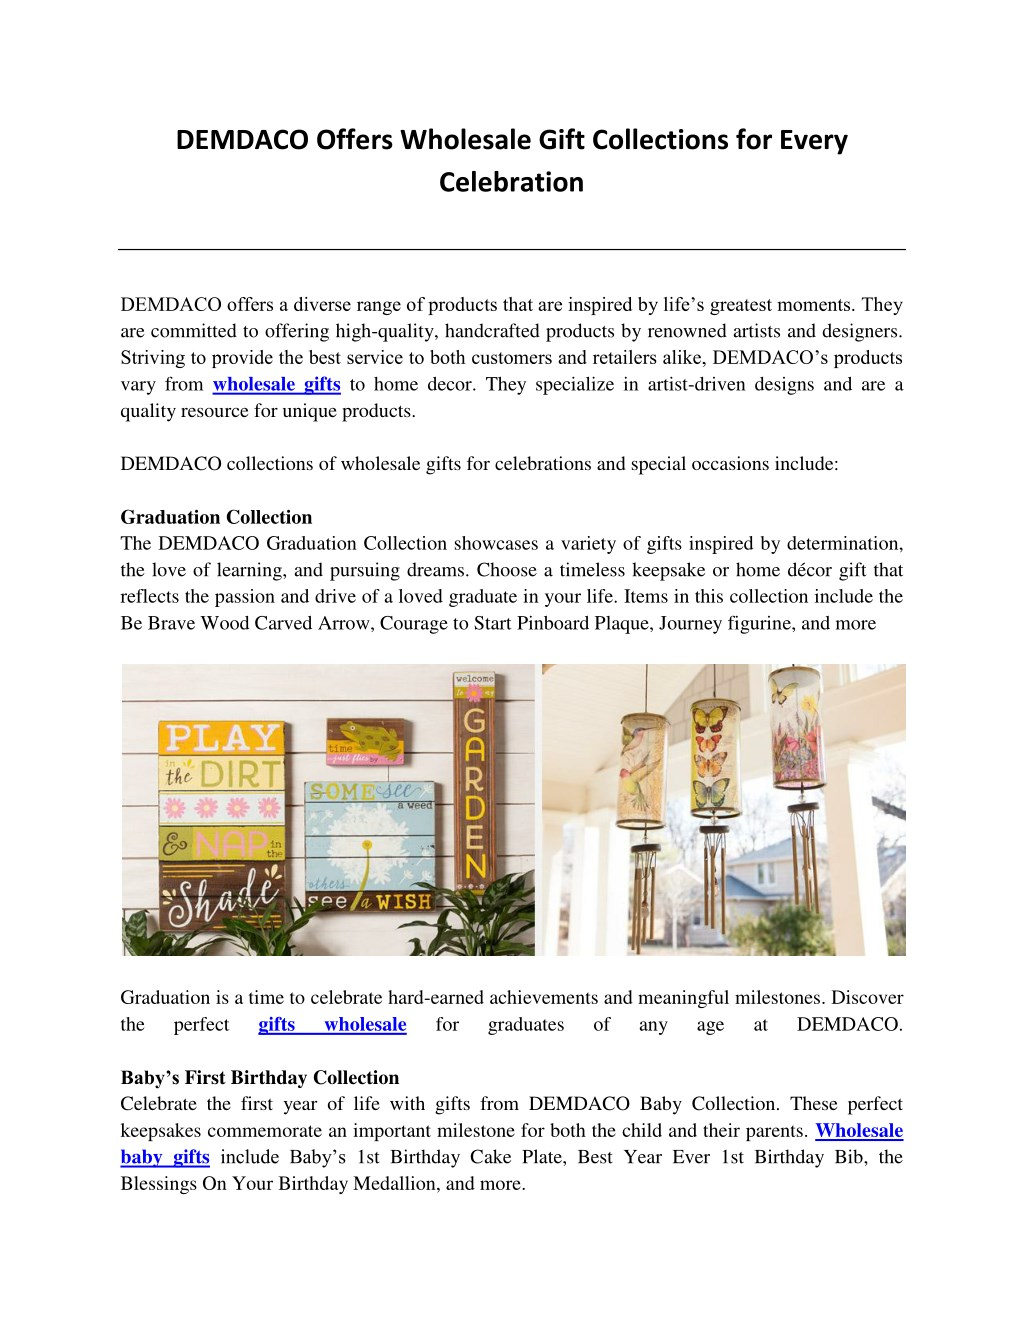 DEMDACO Offers Wholesale Gift Collections For Every Celebration    PowerPoint PPT Presentation